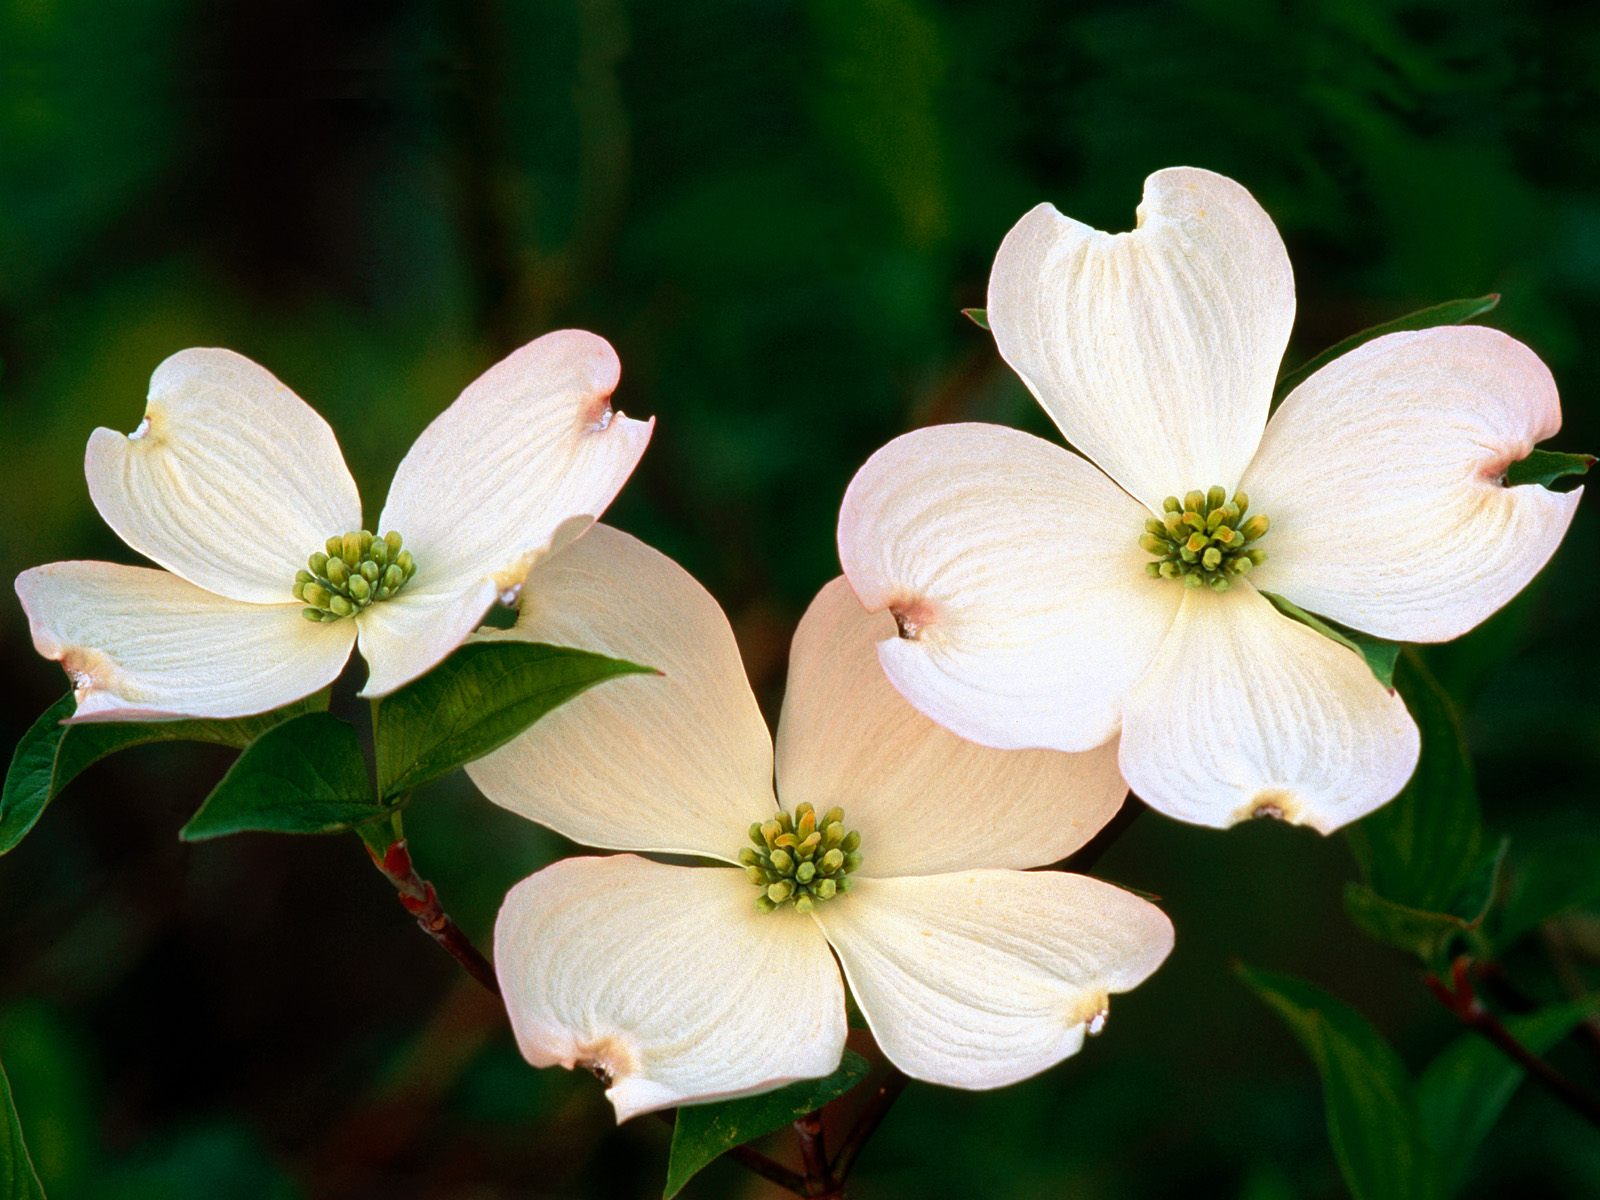 http://4.bp.blogspot.com/-zWeW7rSzJ3Q/TjkvSMnsK6I/AAAAAAAAD5g/9QZKR3DJST4/s1600/flowering_dogwood_blossoms_download.jpg